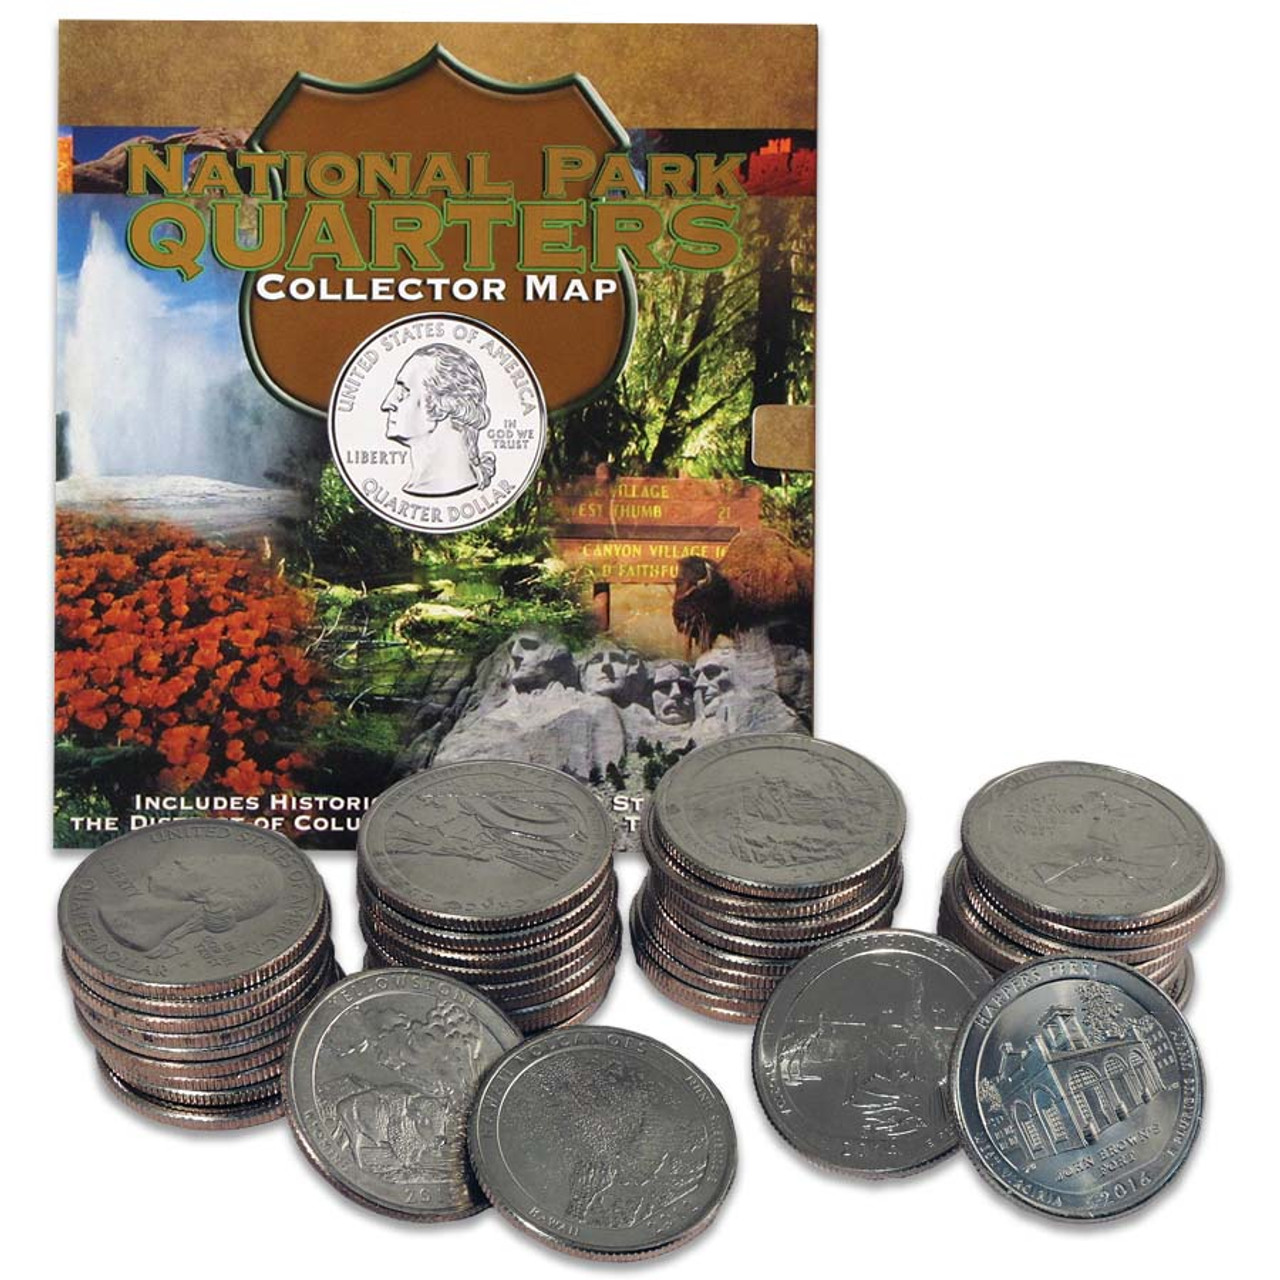 National Park Quarters Collector Map with 2010-2018 Quarters